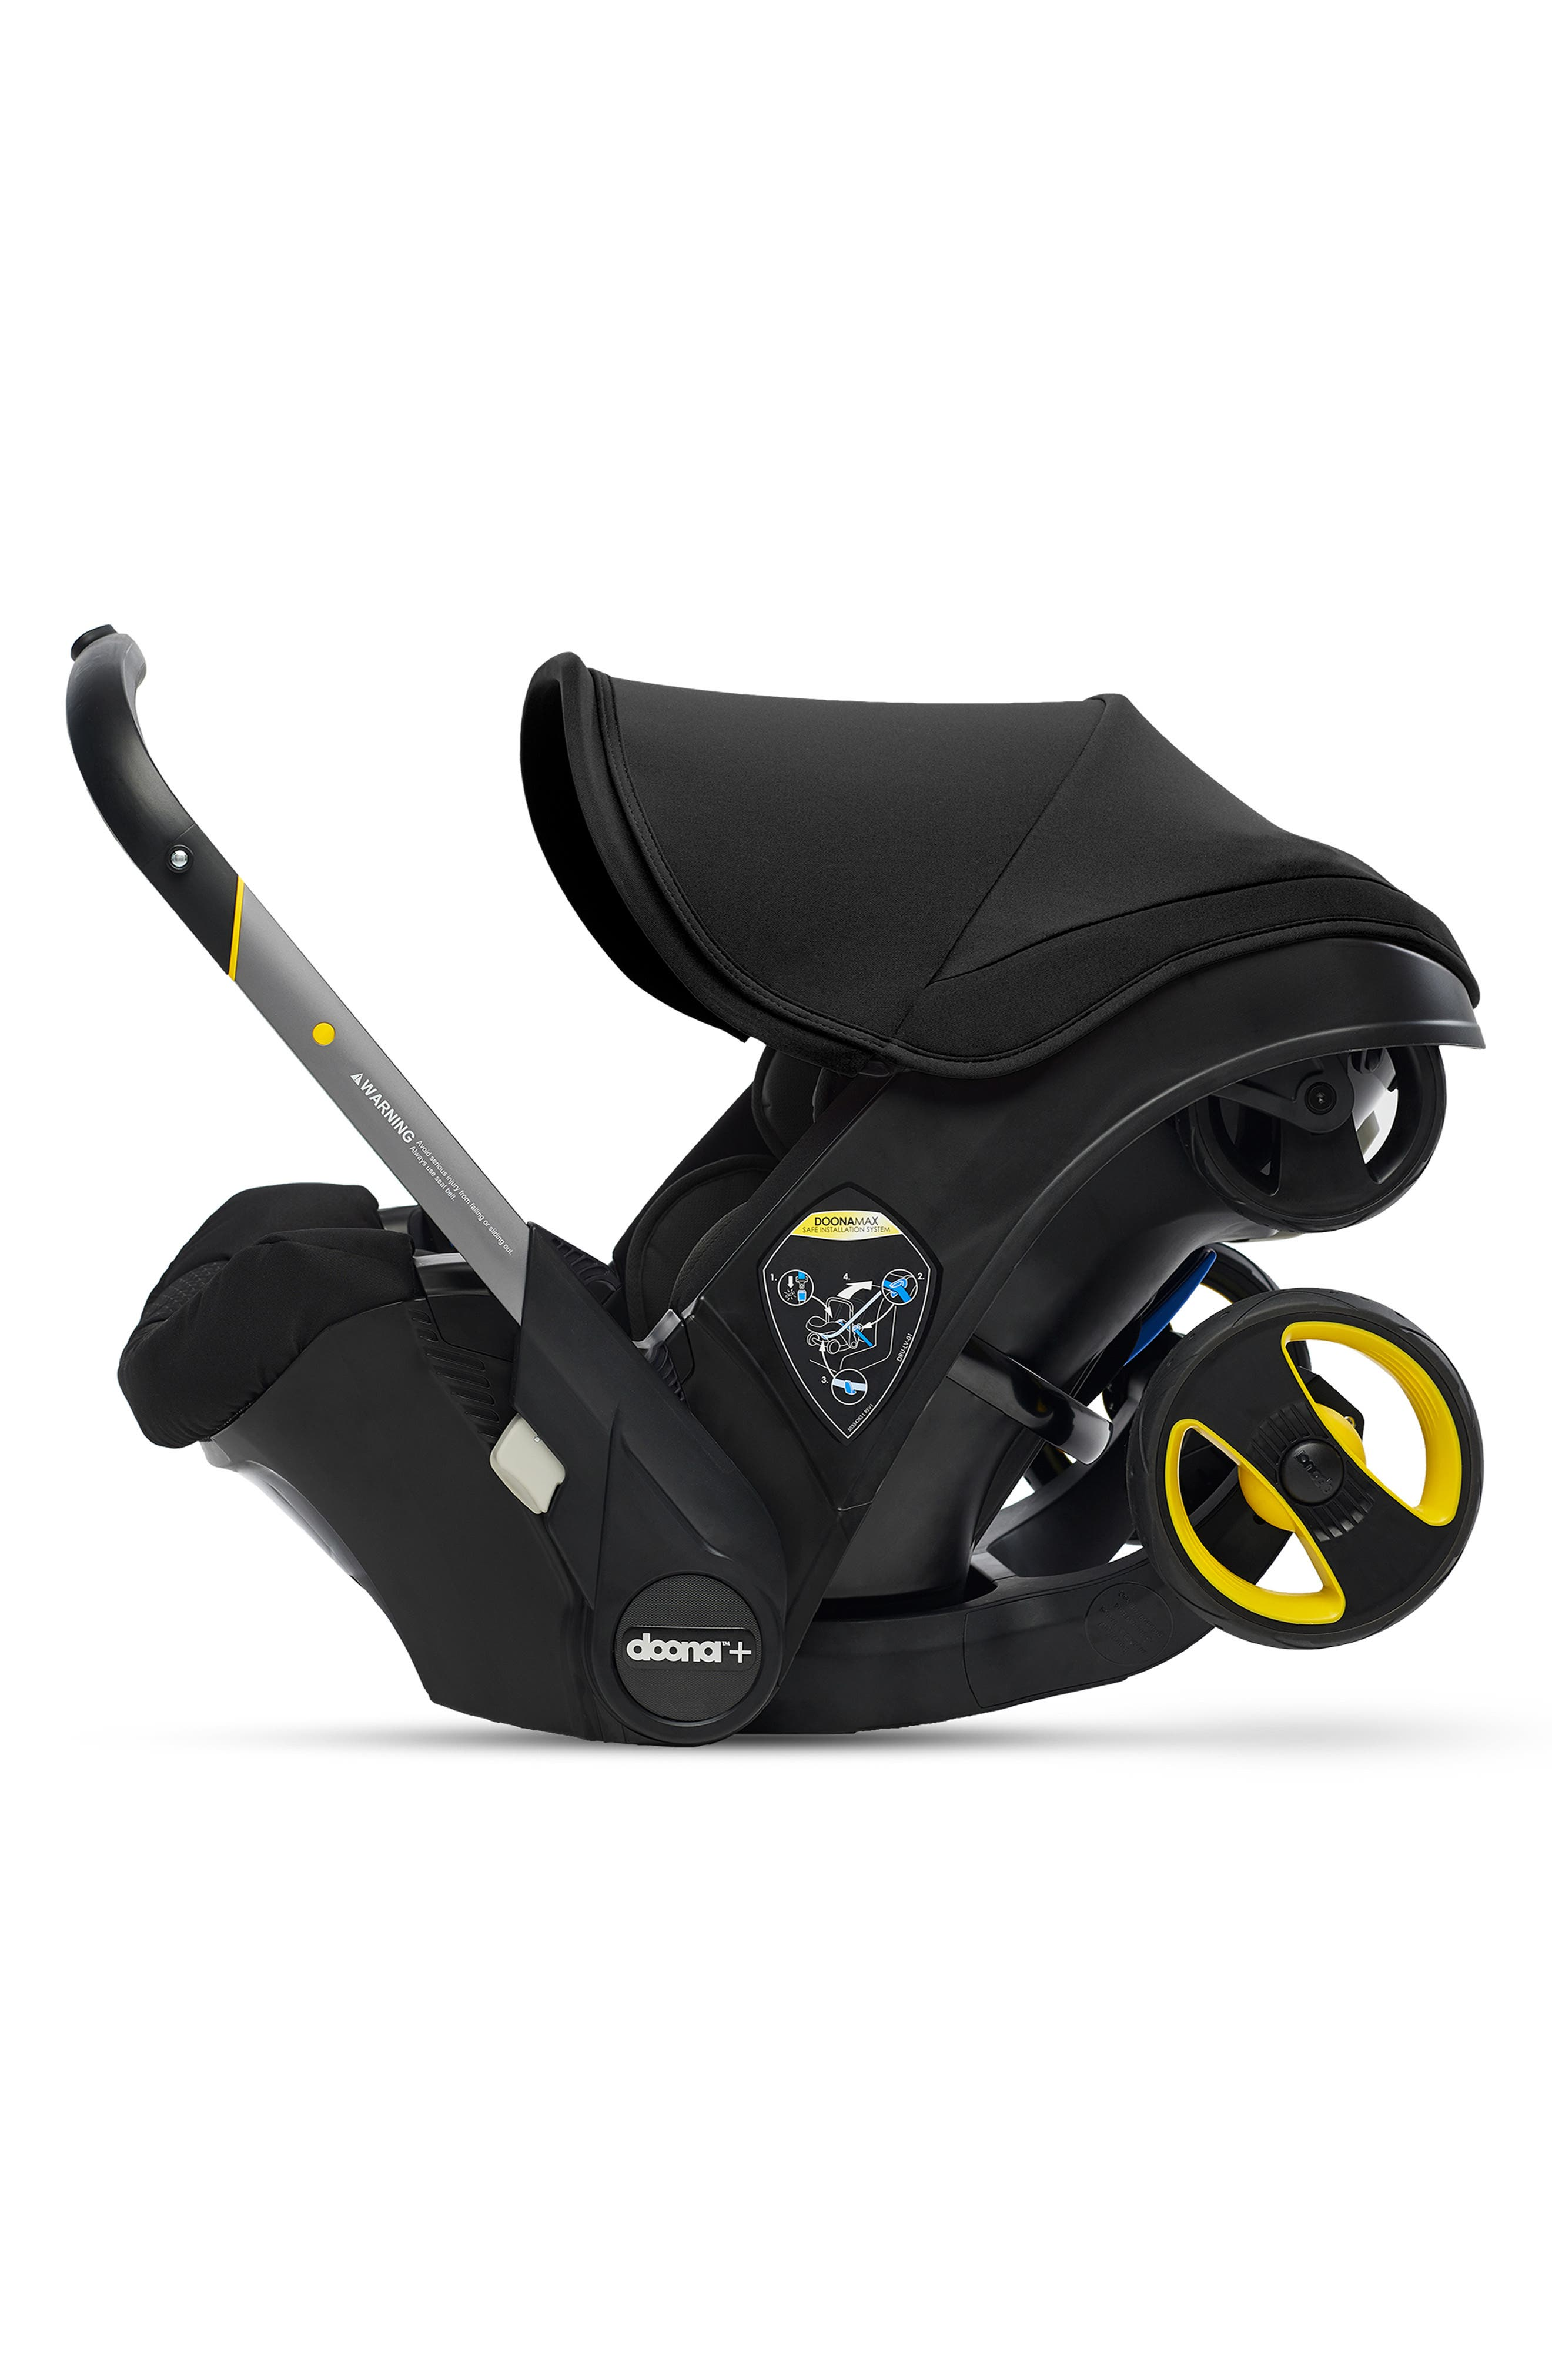 Convertible Infant Car Seat/Compact Stroller System with Base,                             Alternate thumbnail 4, color,                             BLACK/NIGHT